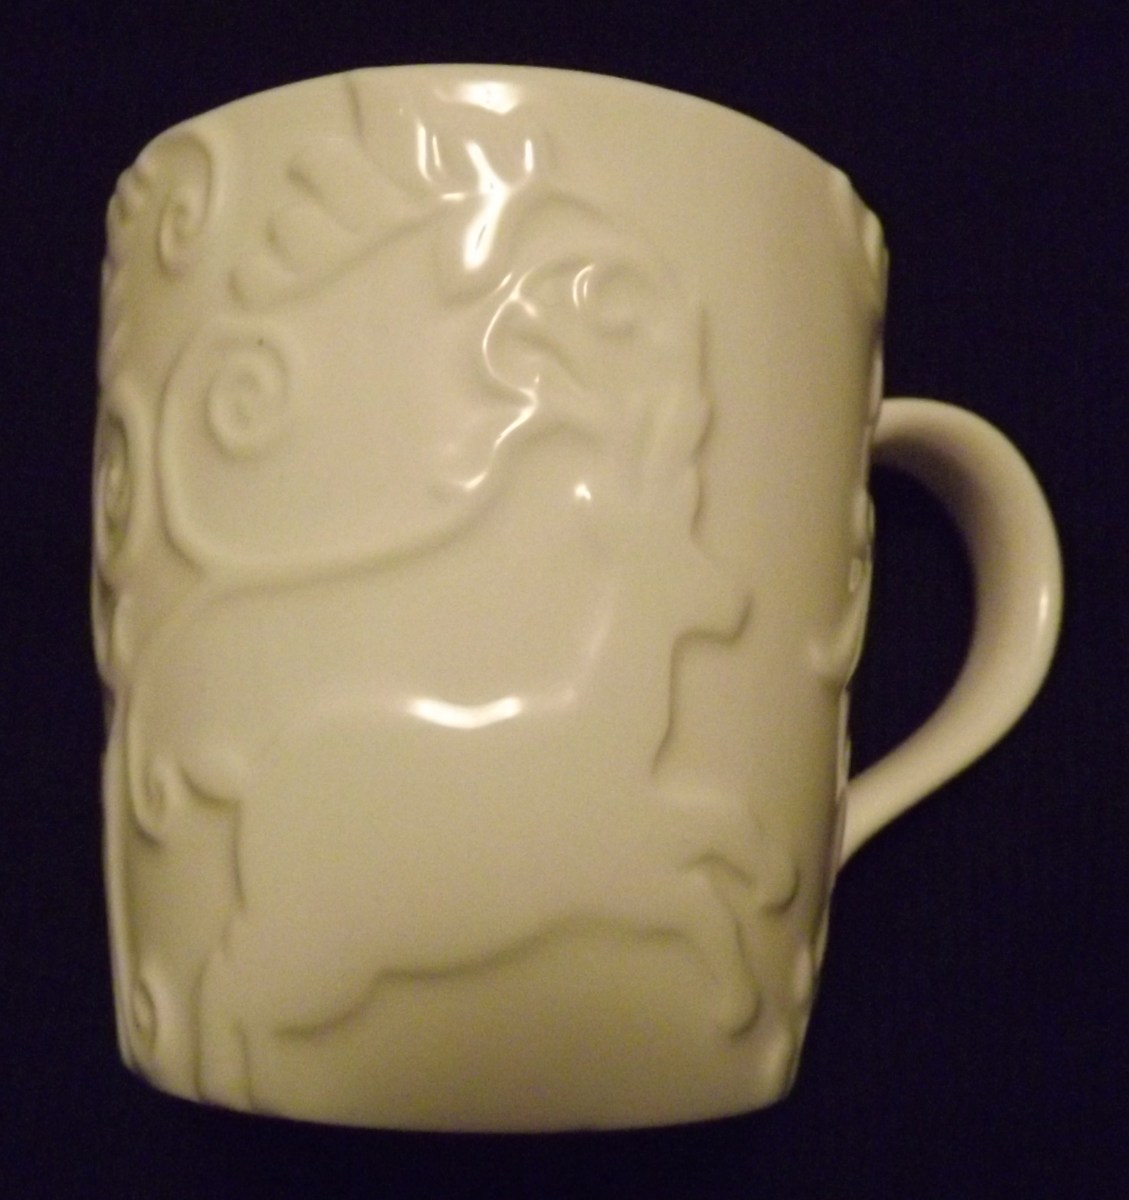 A 2009 Starbucks Mug I Recently Sold